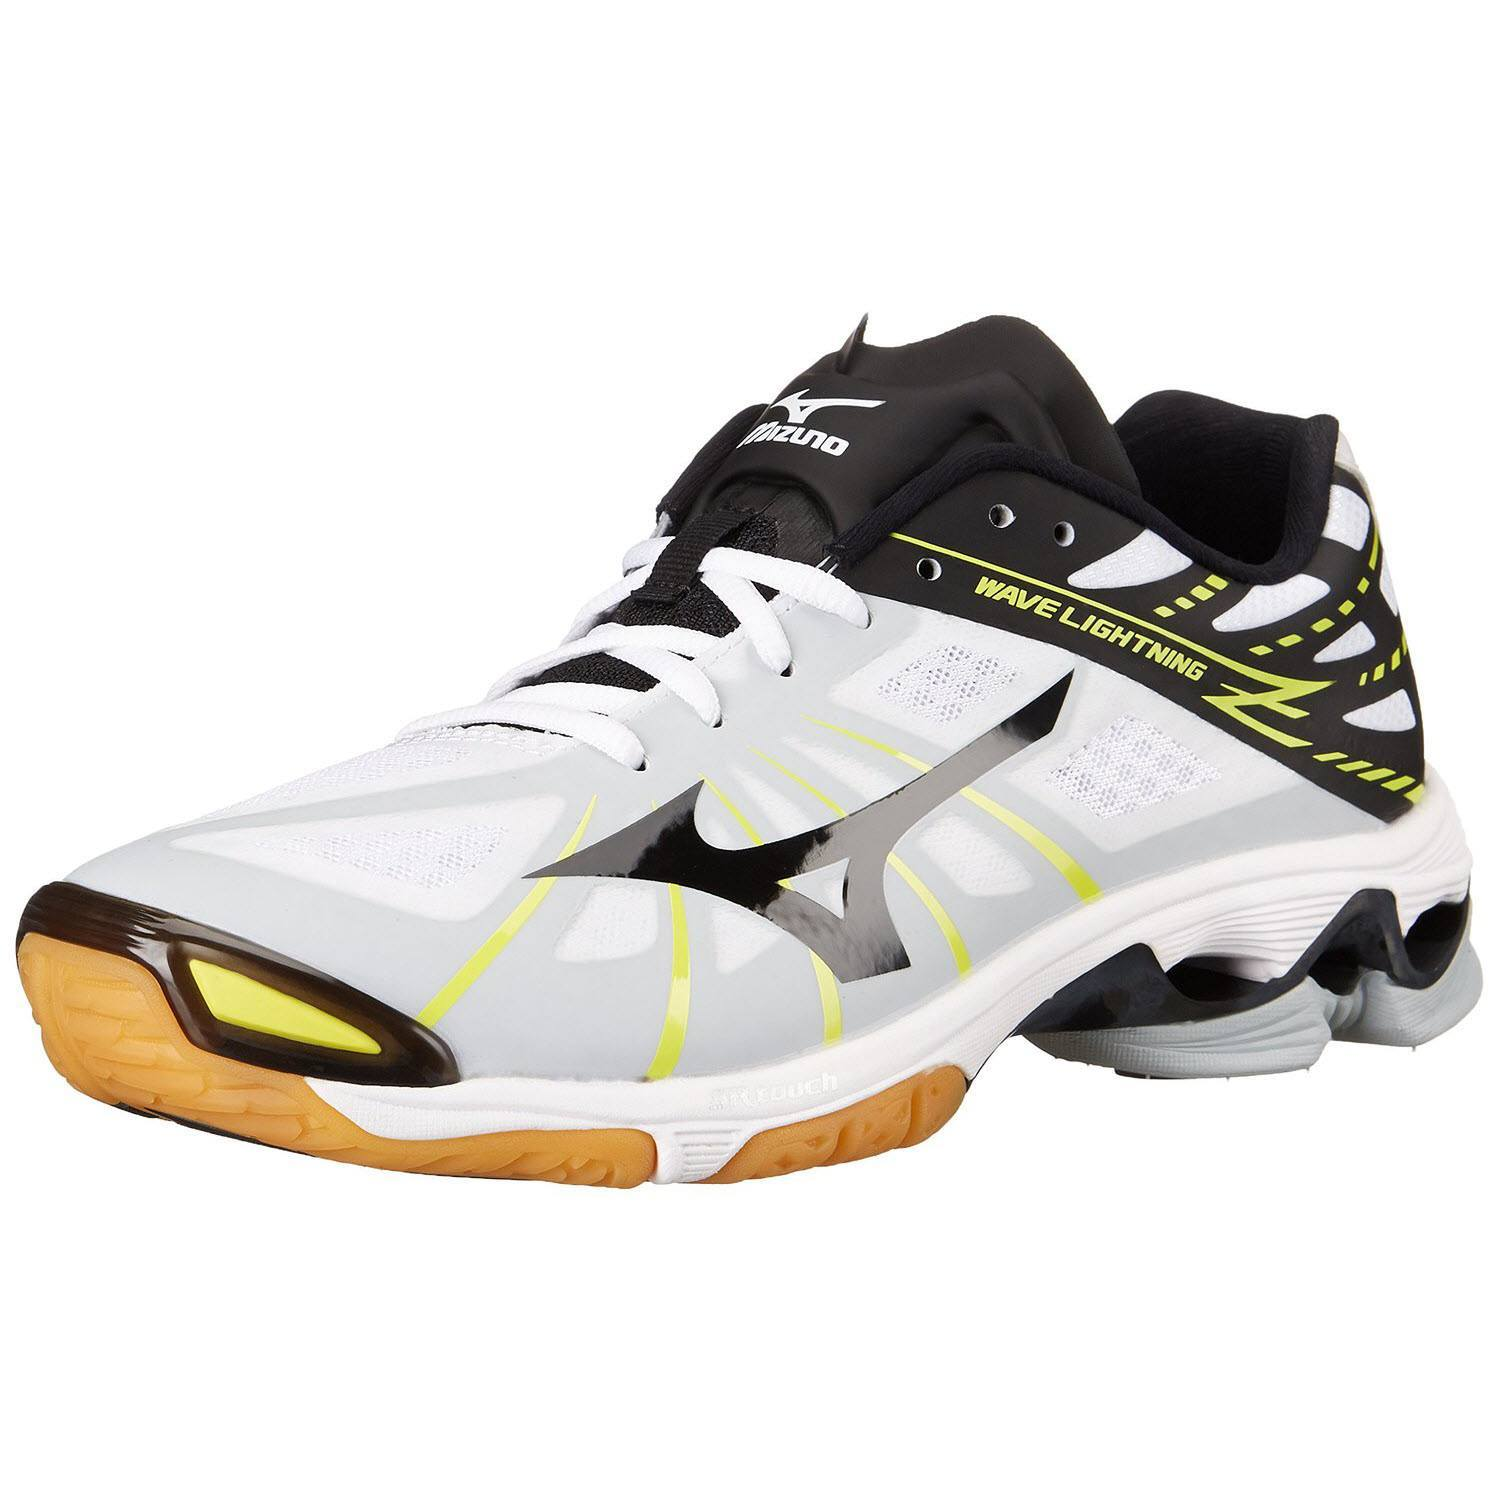 Black And White Mizuno Volleyball Shoes